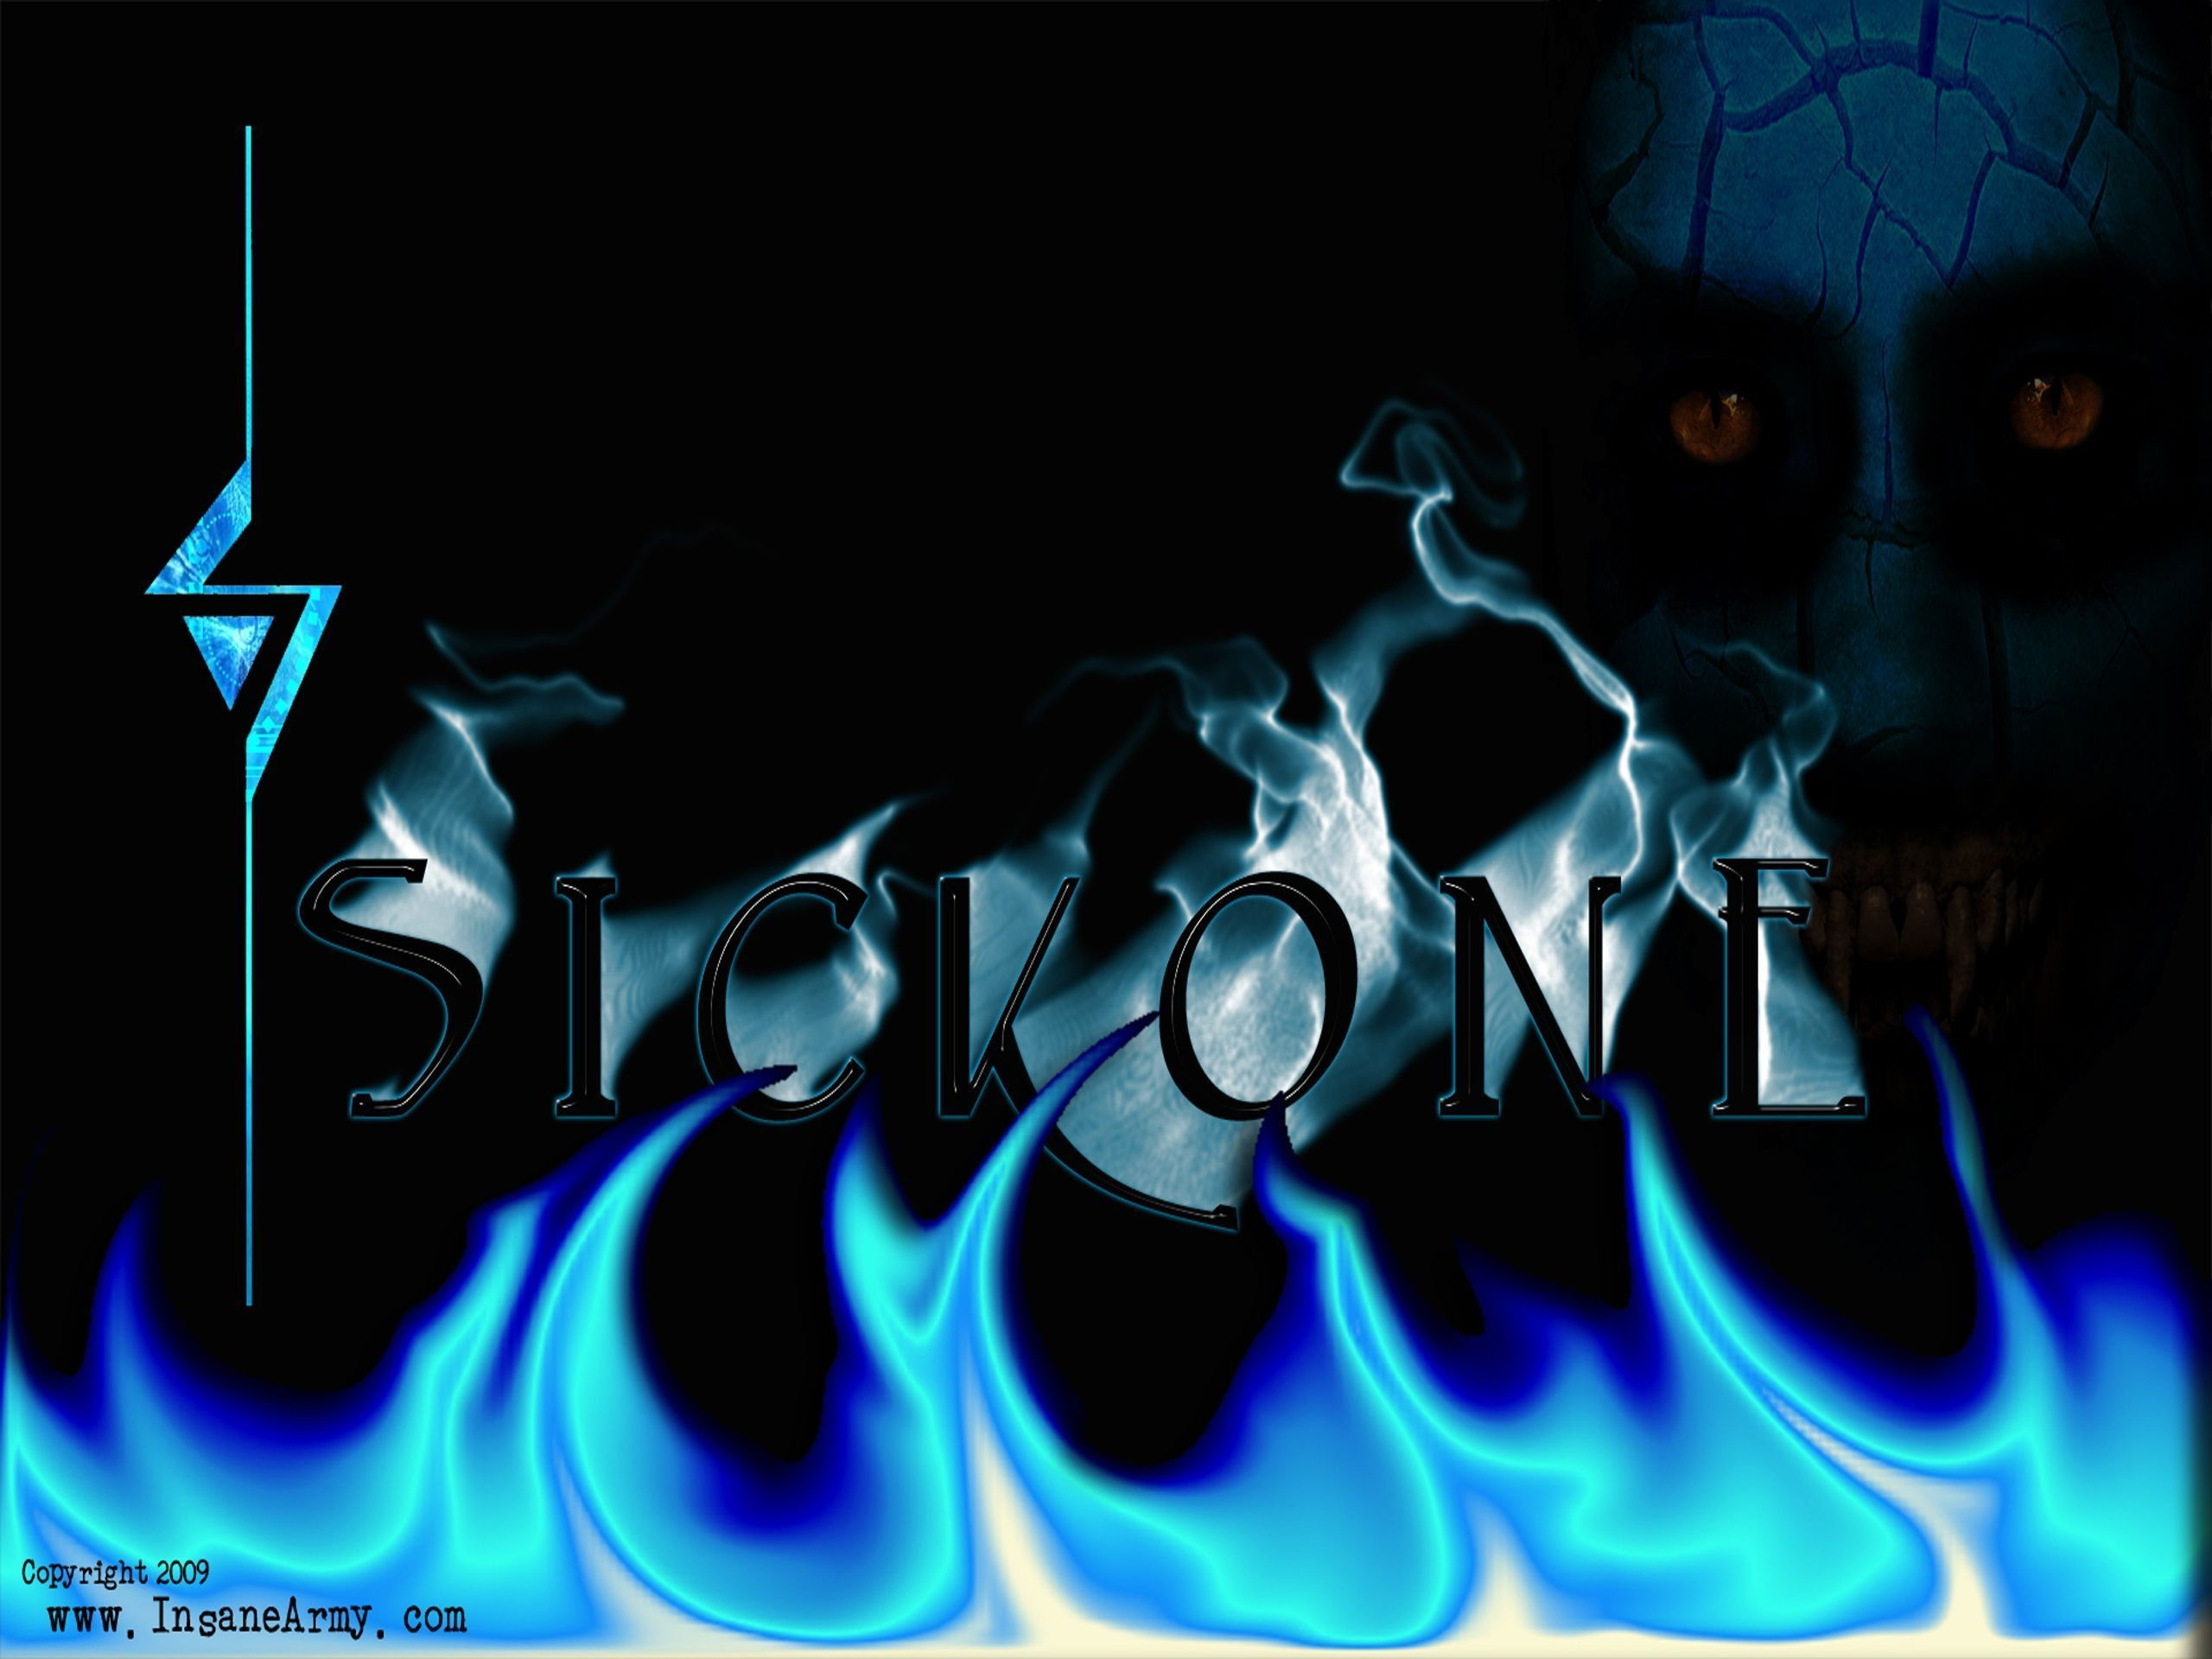 2560x1920  SickonE Blue Flame Insane Army desktop PC and Mac wallpaper